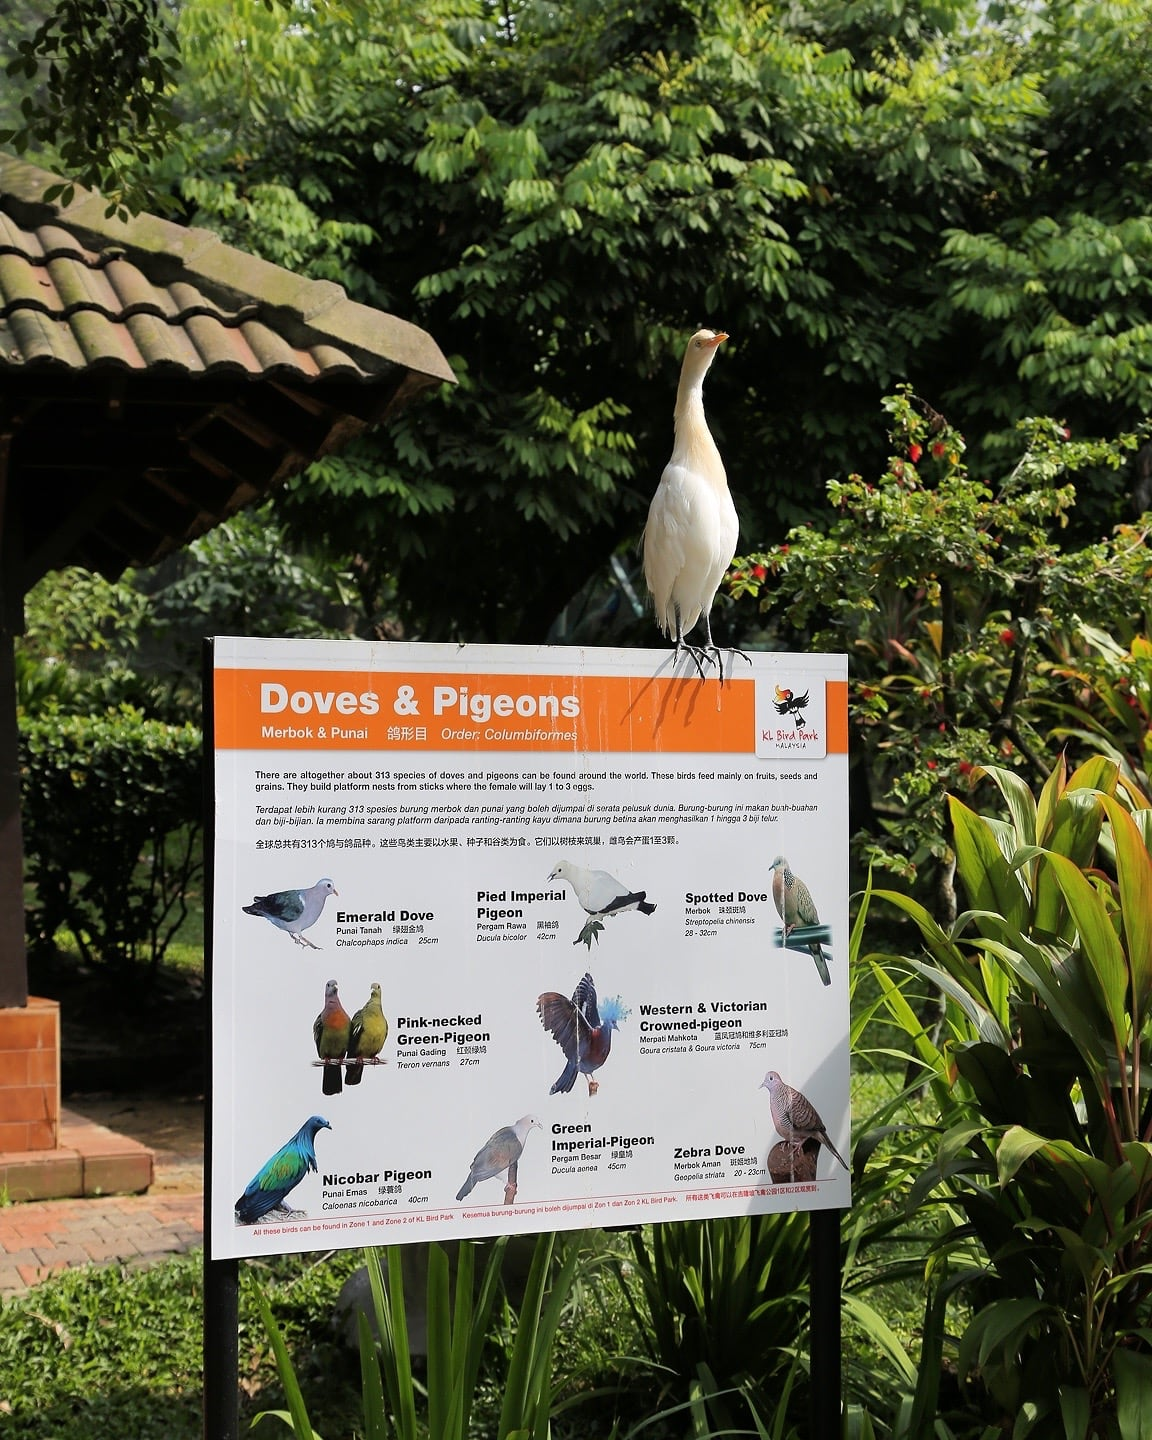 doves and pigeons sign kl bird park